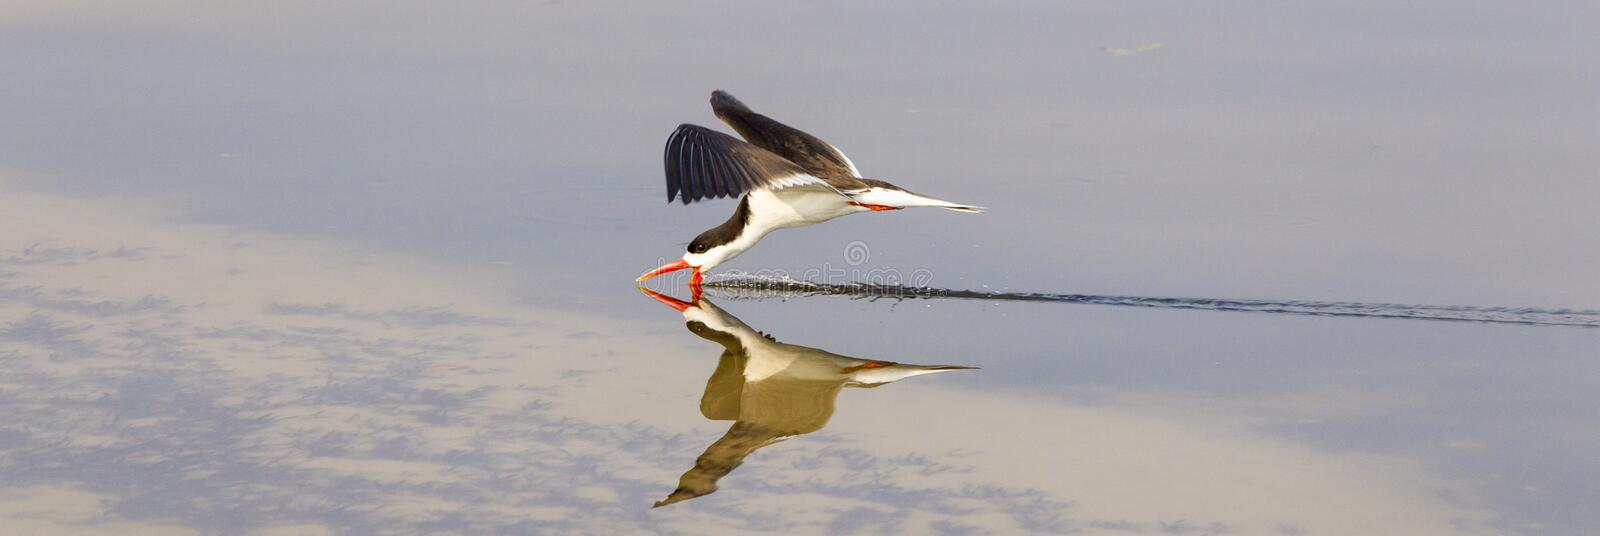 Panoramic Photograph of Caspian Tern. Caspian tern in Panoramic Photograph royalty free stock photo